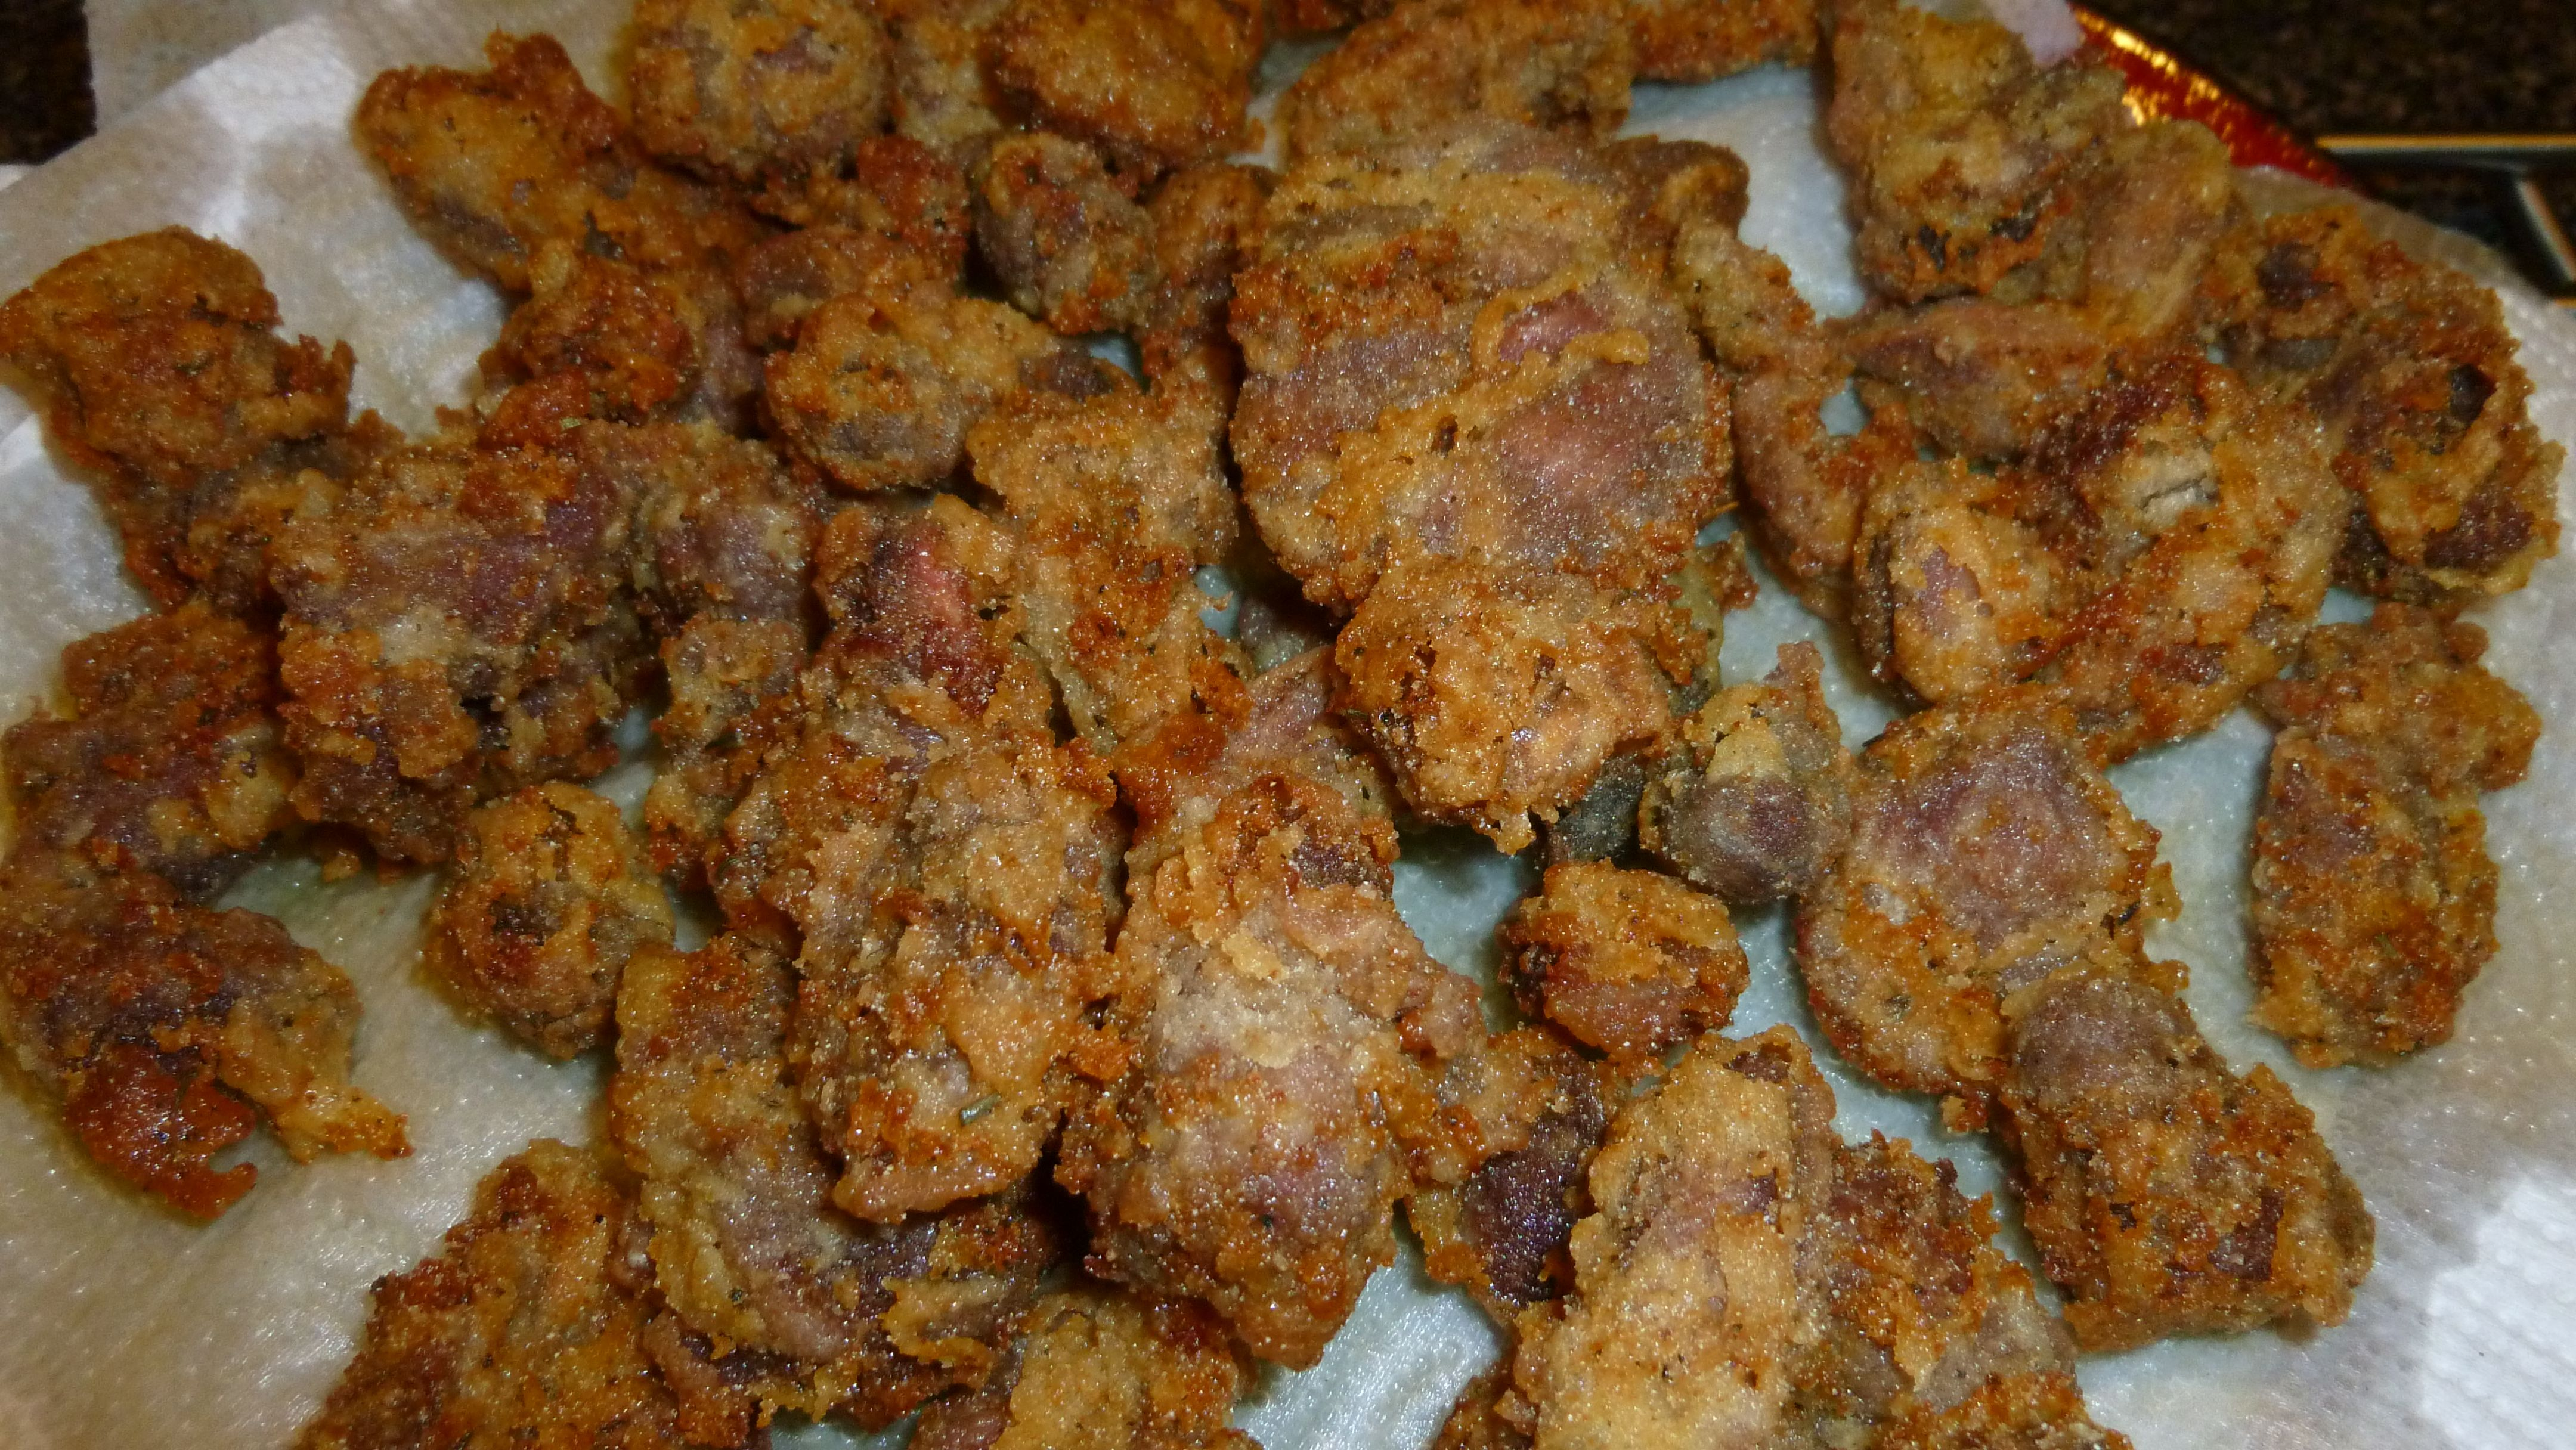 Bill S Ultimate Fried Chicken Gizzards Fried Chicken Gizzard Recipe Fried Chicken Chicken Gizzards